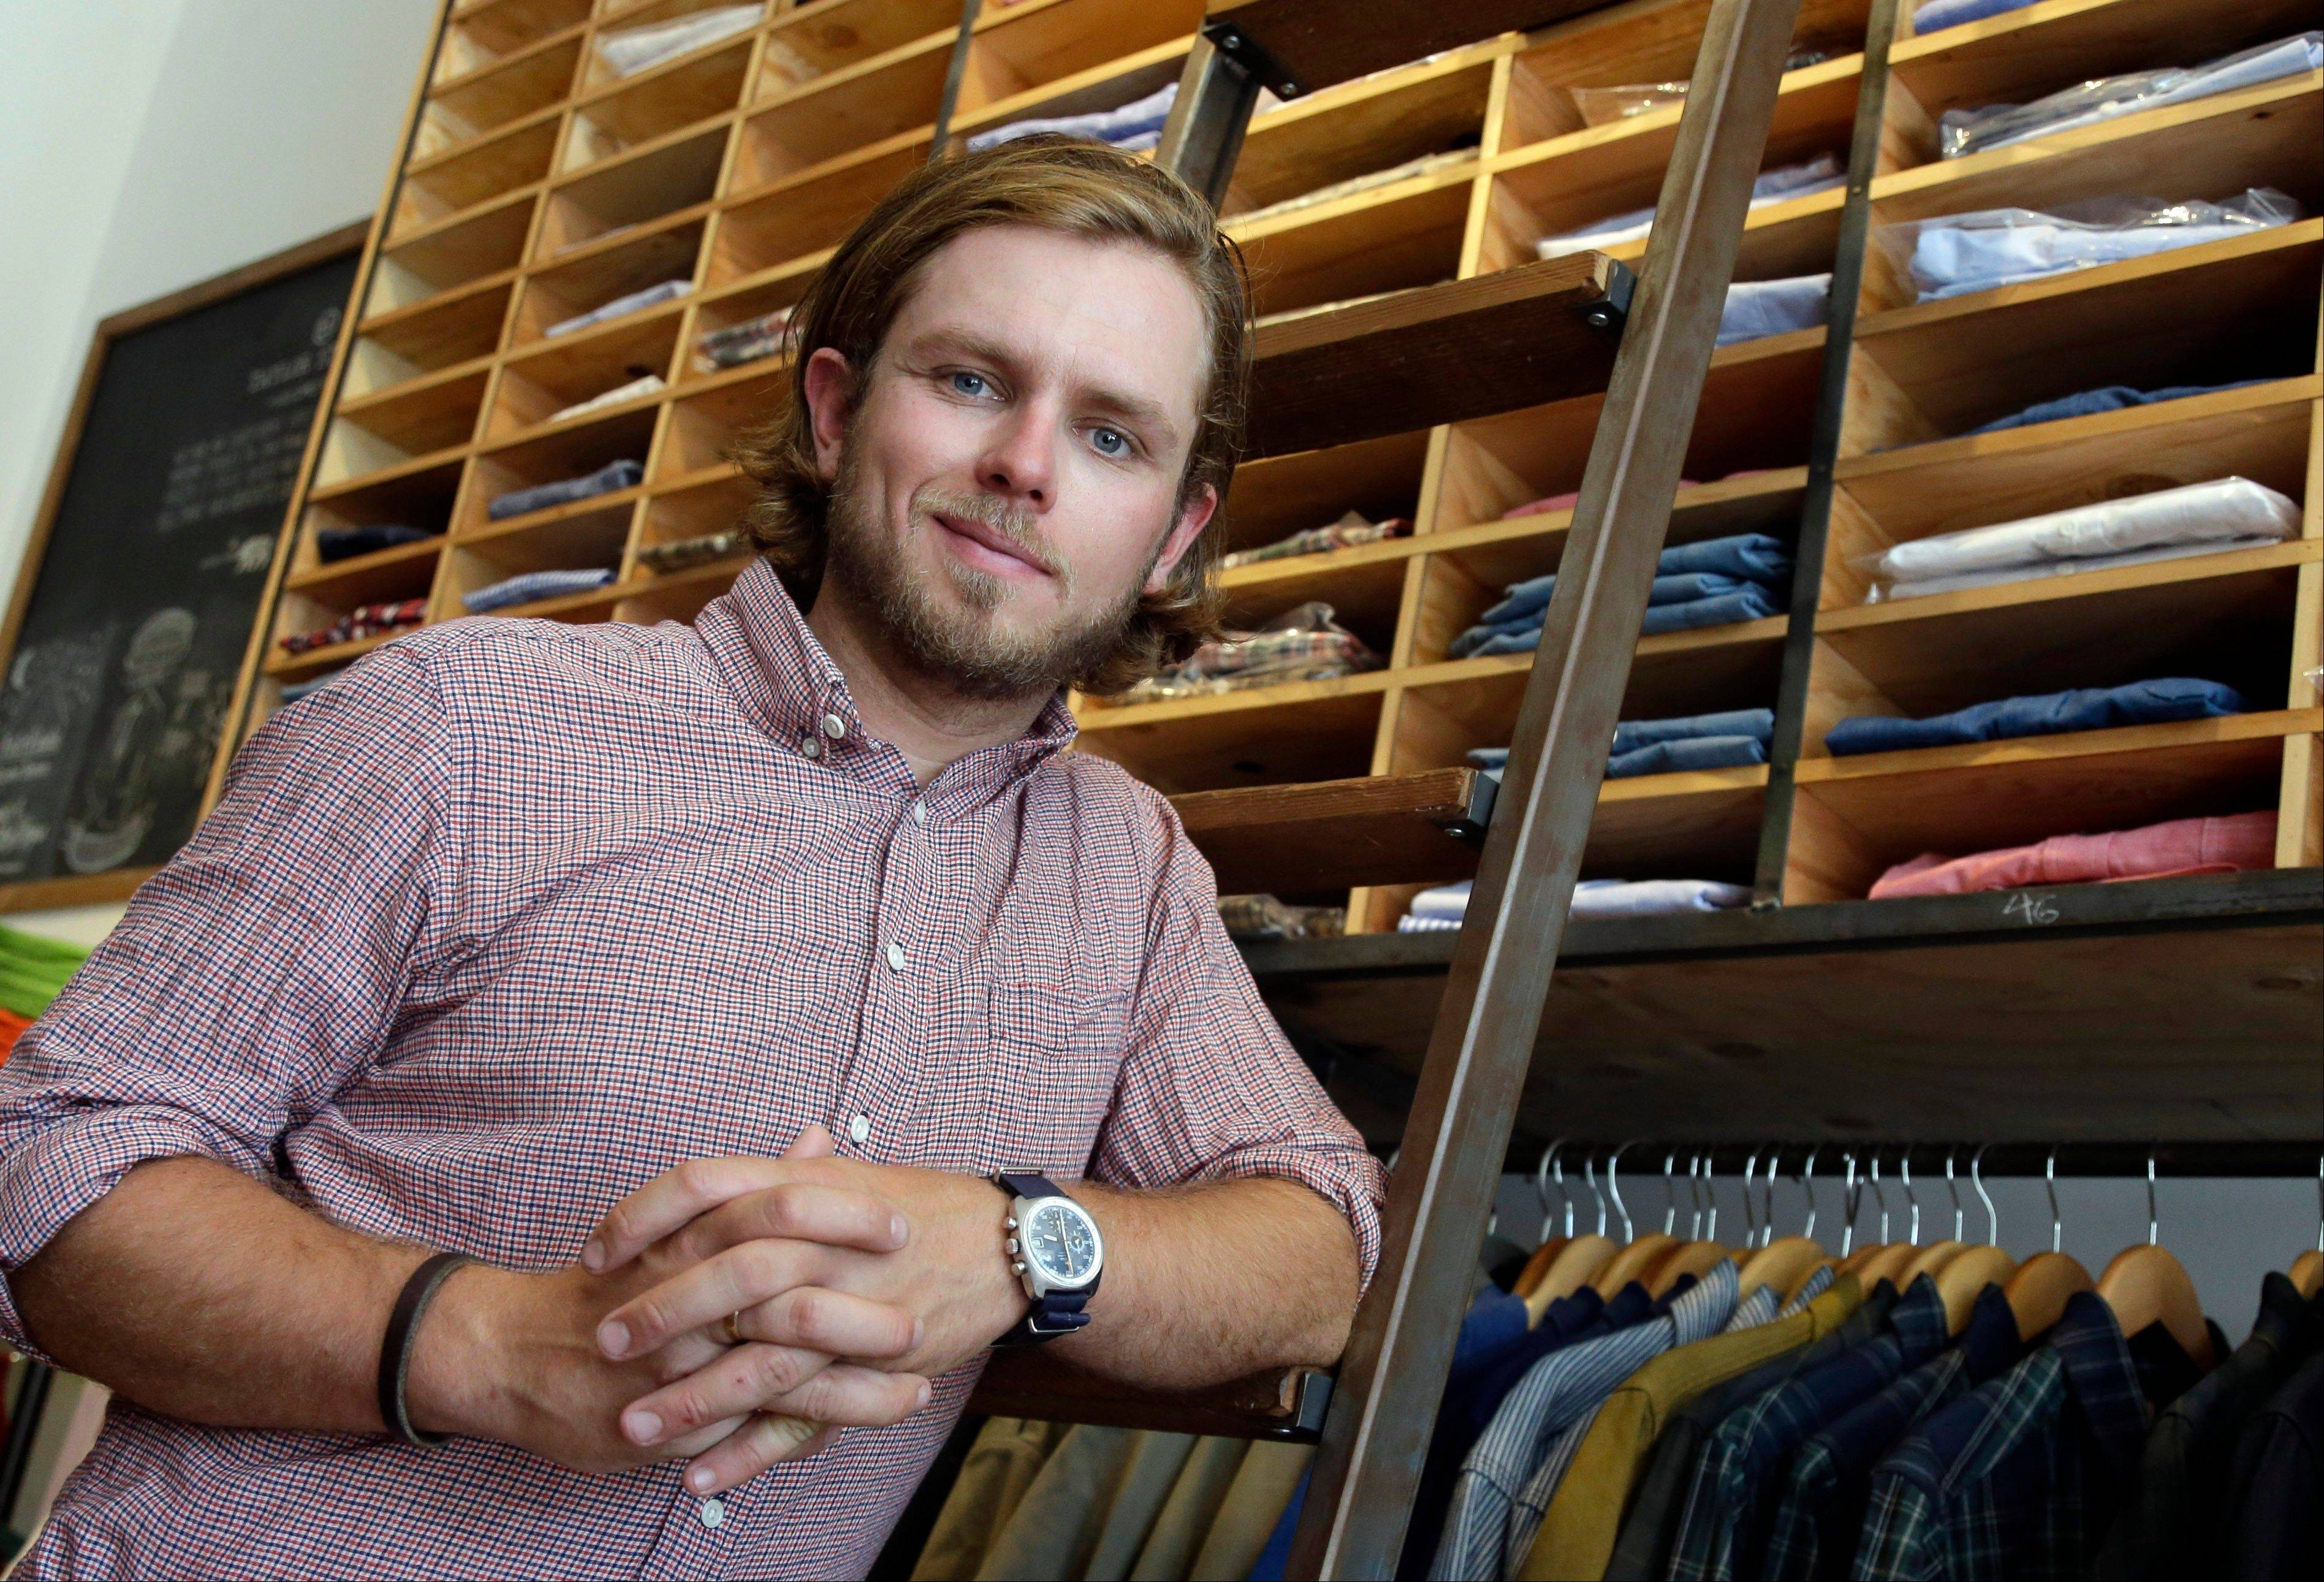 Michael Maher, co-owner of Taylor Stitch, poses for a portrait at his shop in San Francisco. Saving for retirement just isn't a priority for Michael Maher, 28, co-owner of Taylor Stitch, a four-year-old clothing retailer based in San Francisco. He and his partners used their own savings to start and build the company, and they're relying on their cash flow to buy inventory and run the business.